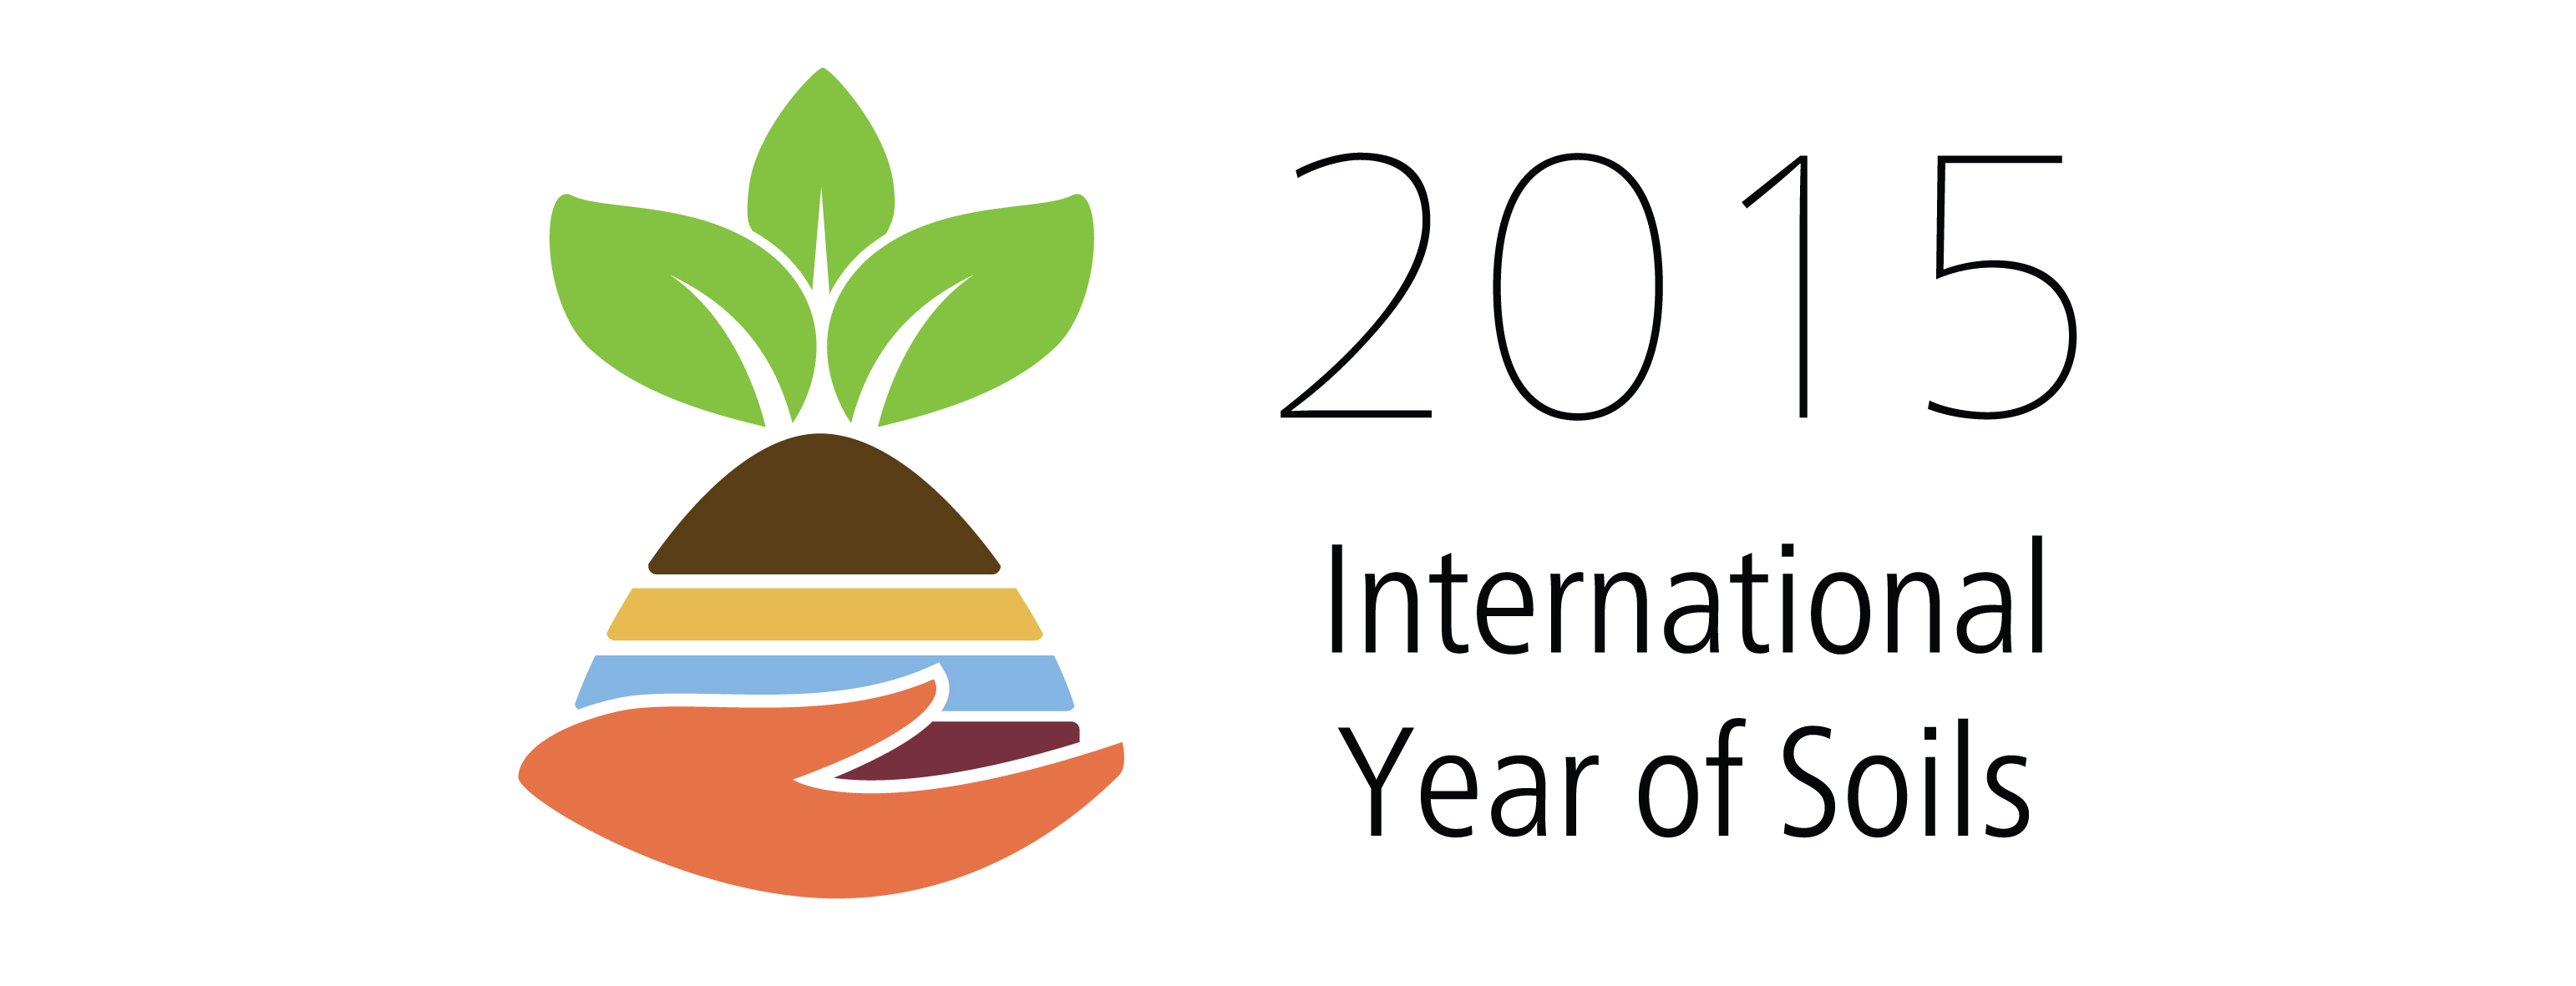 International Year of Soils logo